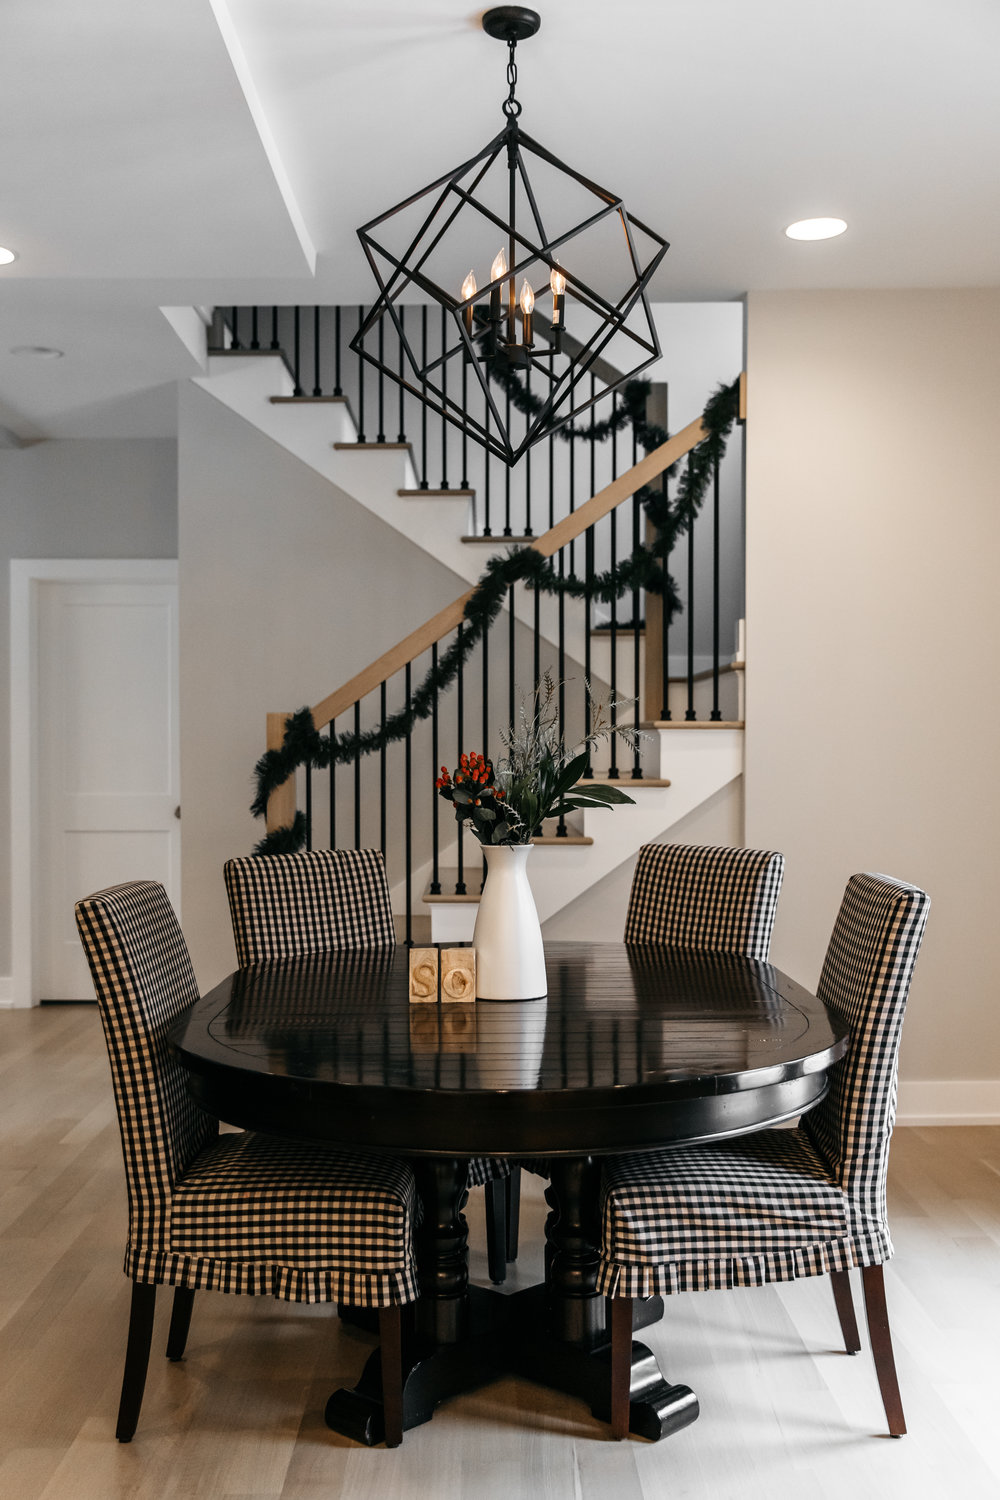 Dining table with floral centerpieces and garland wrapped staircase